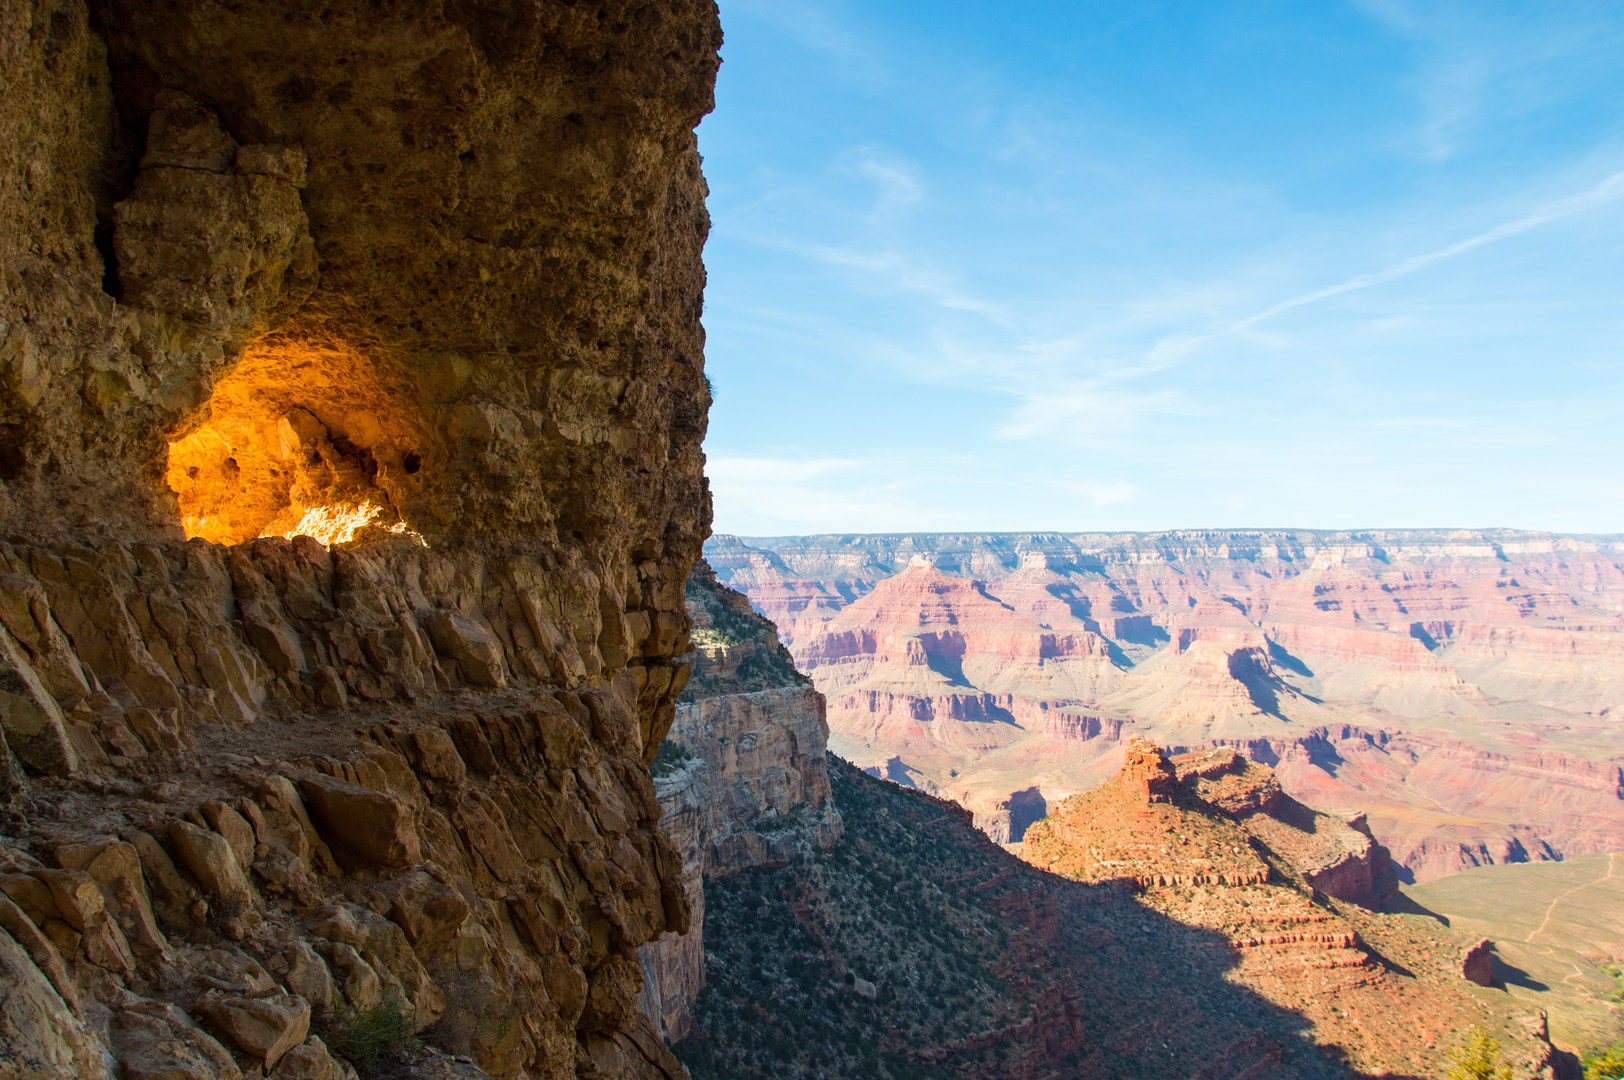 Grand Canyon National Park S 10 Best Day Hikes Outdoor Project